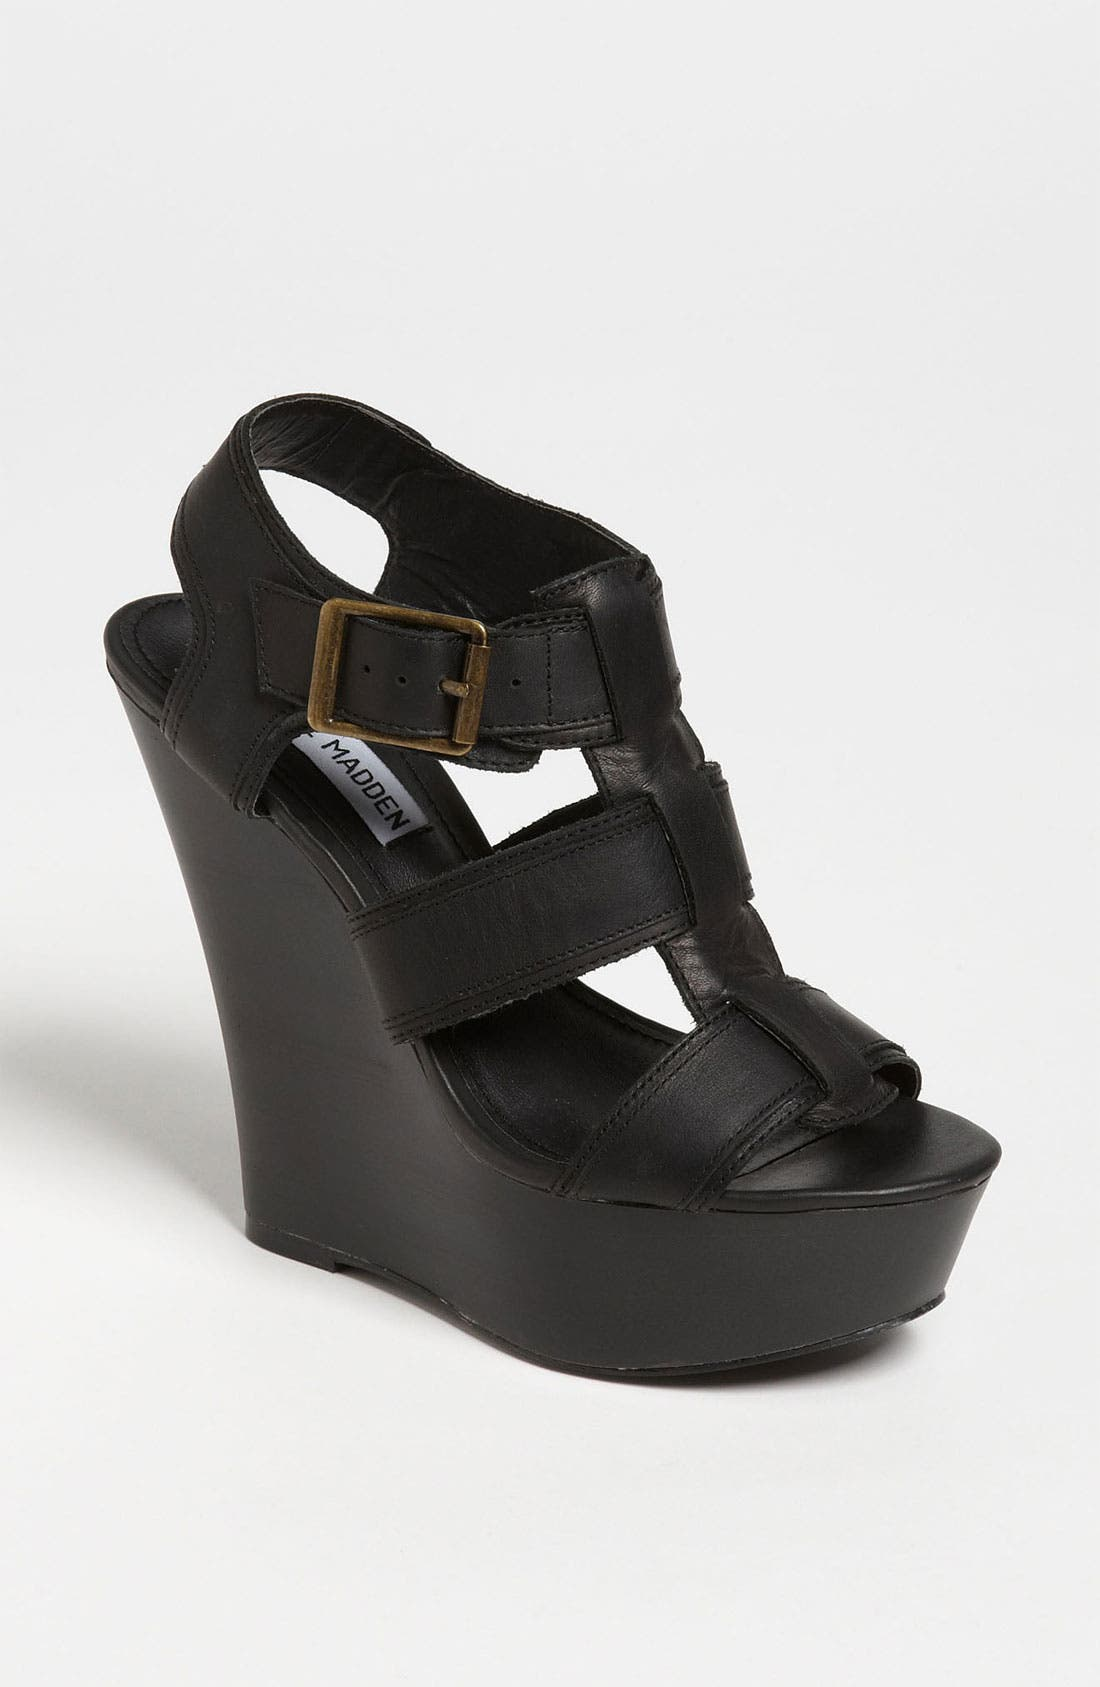 STEVE MADDEN,                             'Wanting' Wedge Sandal,                             Main thumbnail 1, color,                             001